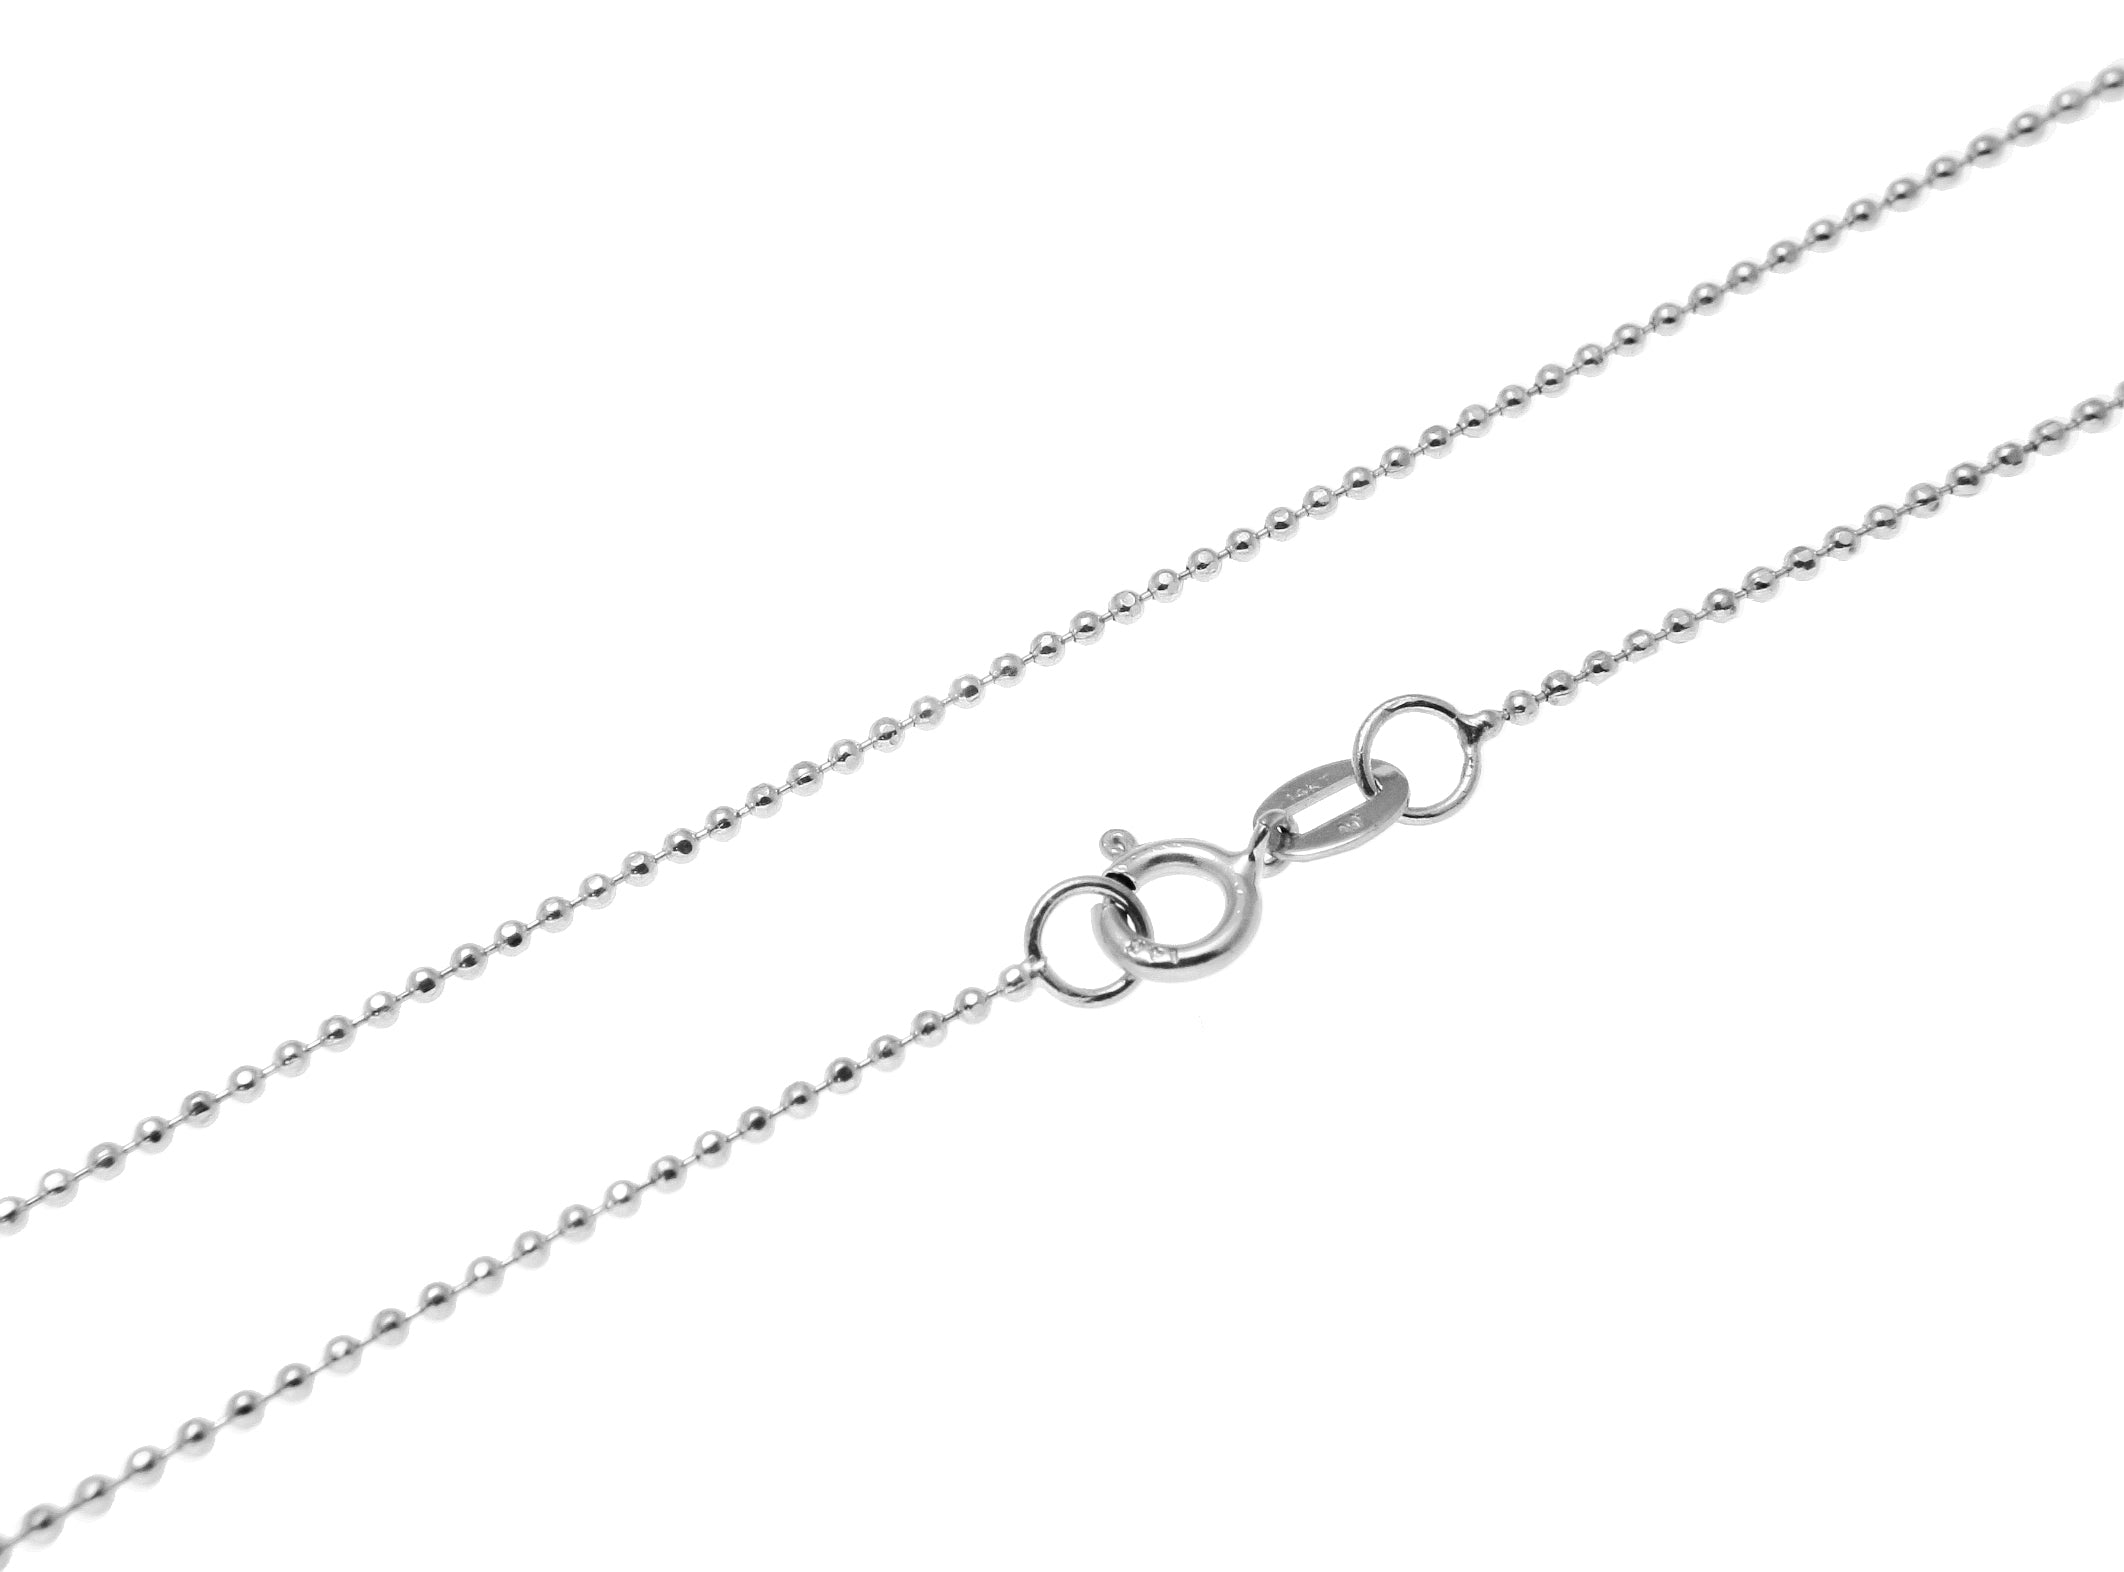 1mm Diamond Cut Bead Ball Chain Necklace Real Solid 14K White Gold